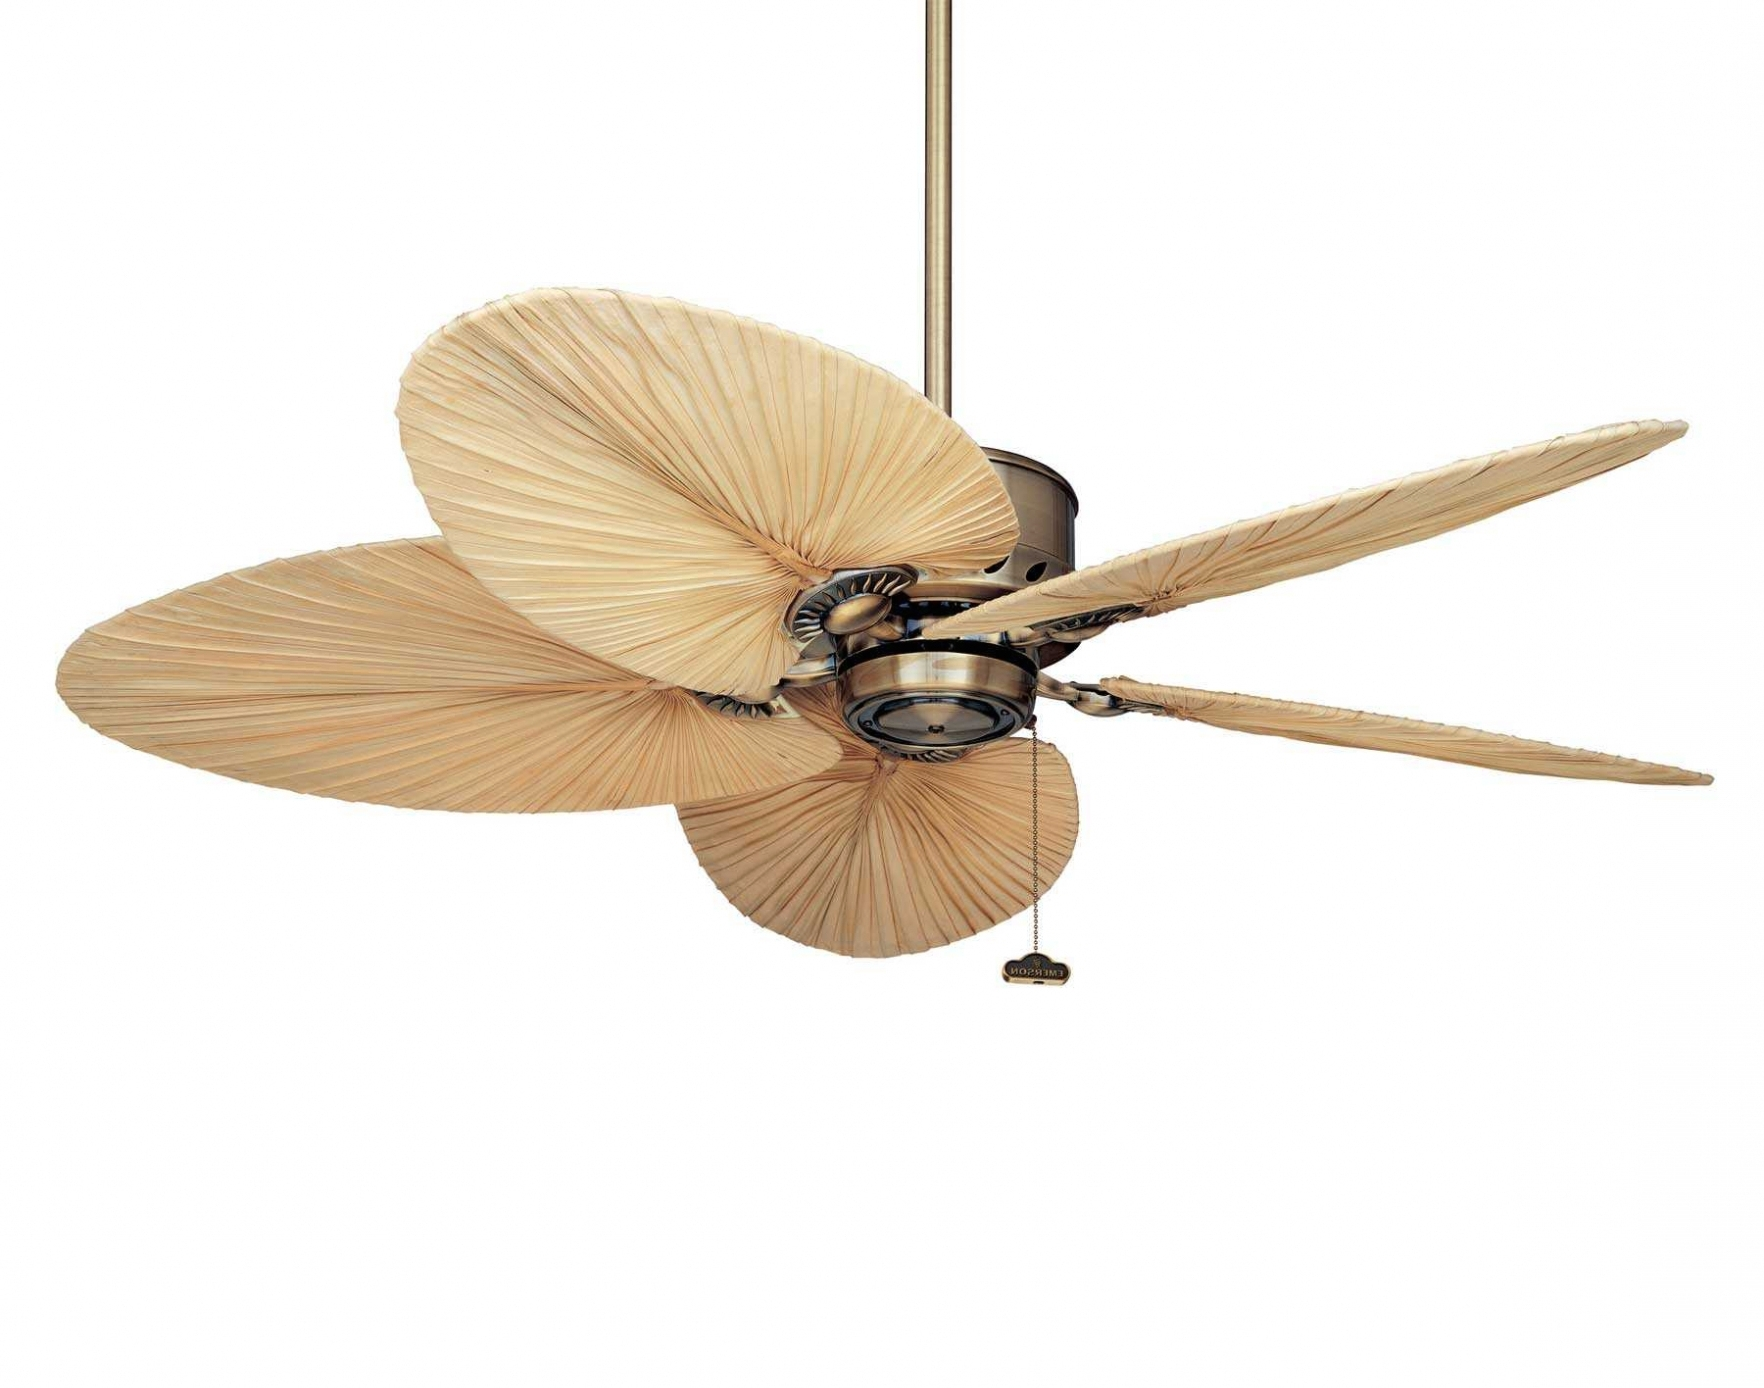 Tropical Outdoor Ceiling Fans With Lights Inside Most Recent Tips: Tropical Outdoor Ceiling Fans With Lights White Fan 2018 And (View 6 of 20)